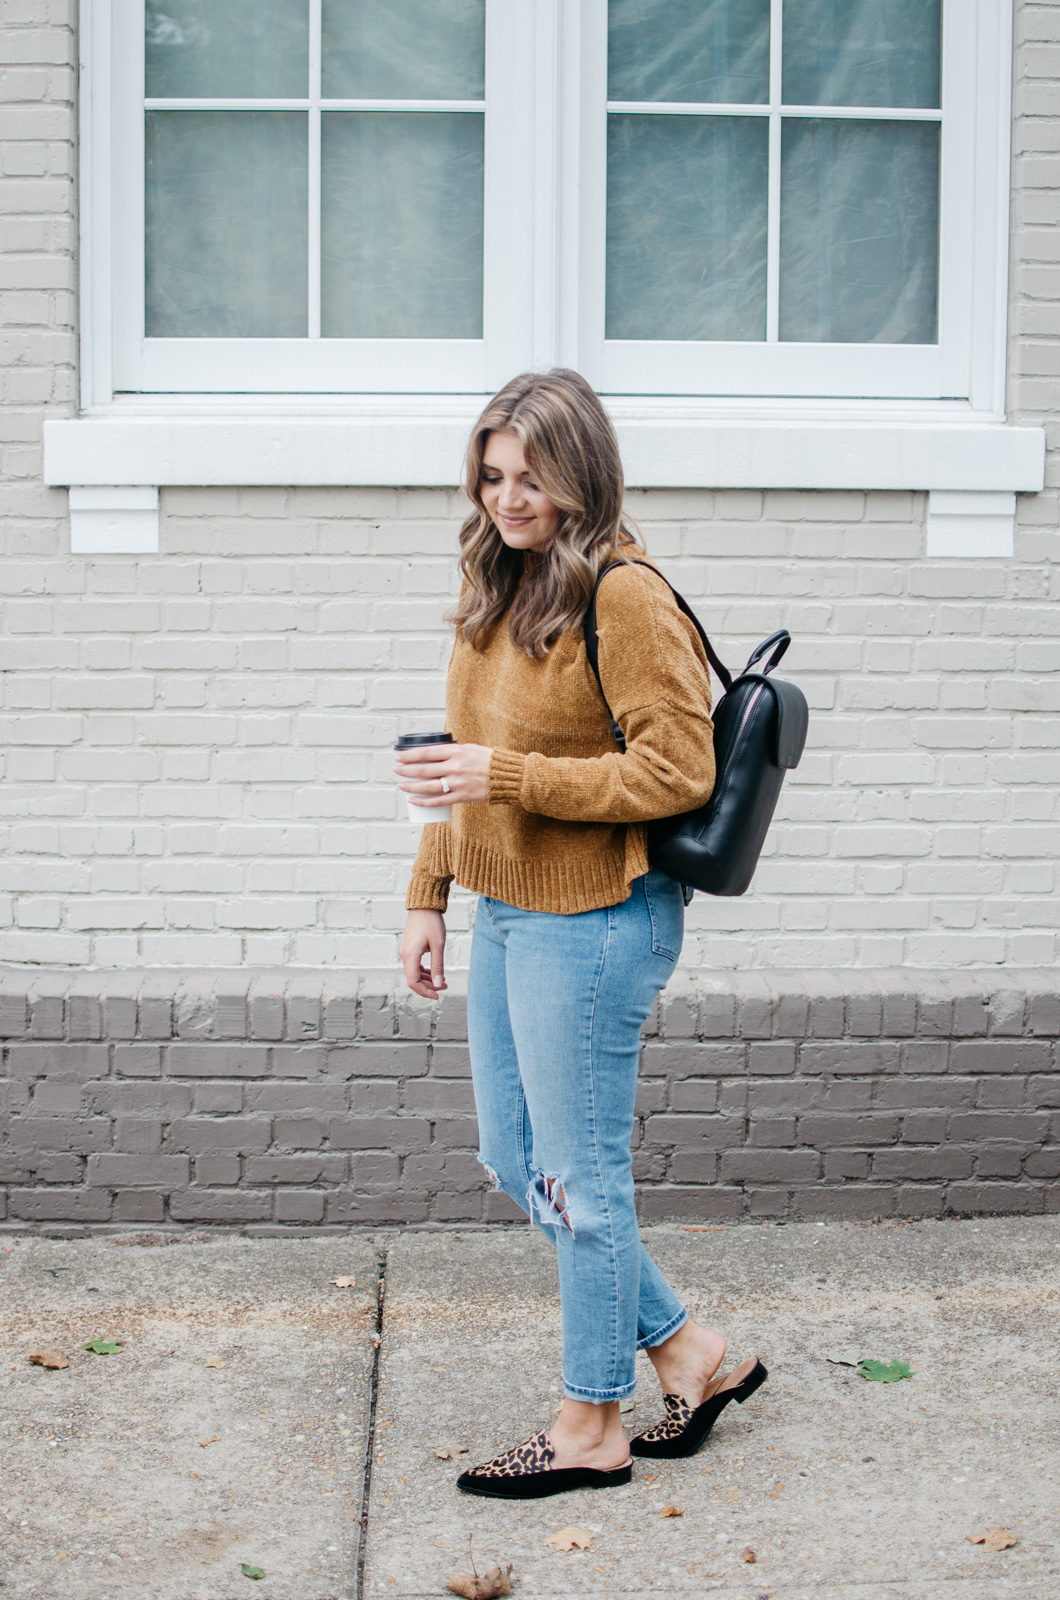 how wear mom jeans - mom jeans fall outfit | See more trendy fall outfits at bylaurenm.com!